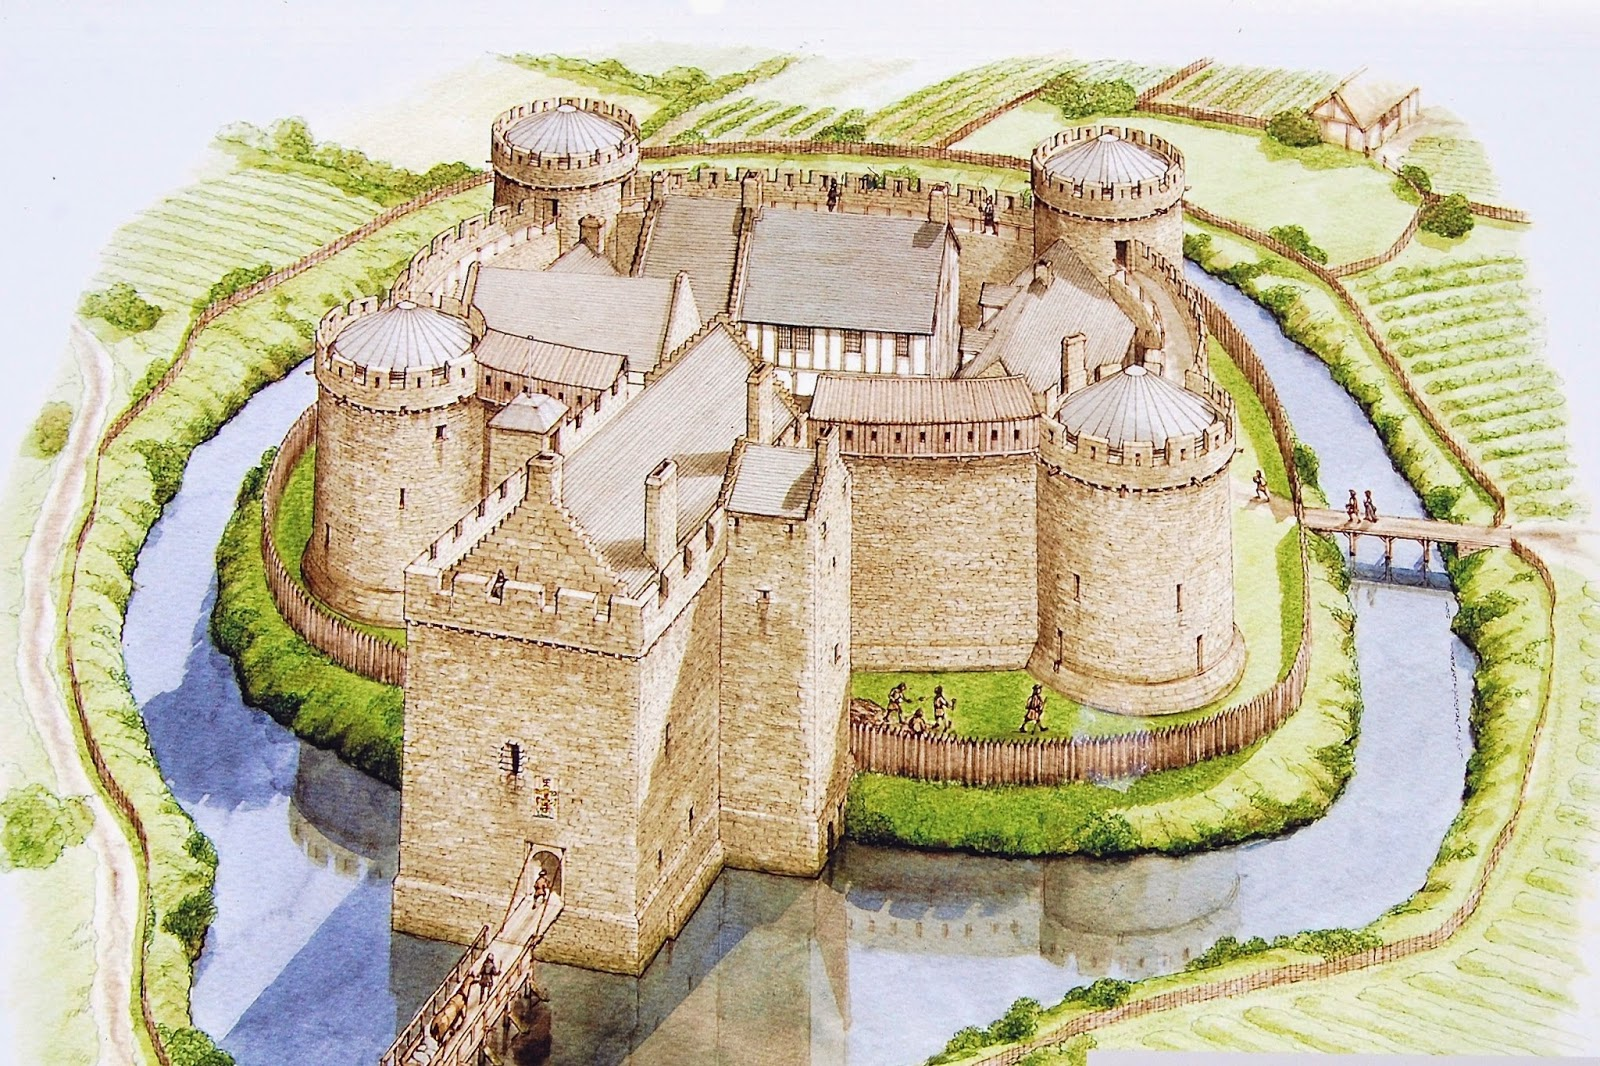 Artist's rendering of Rothesay Castle in the 1540s